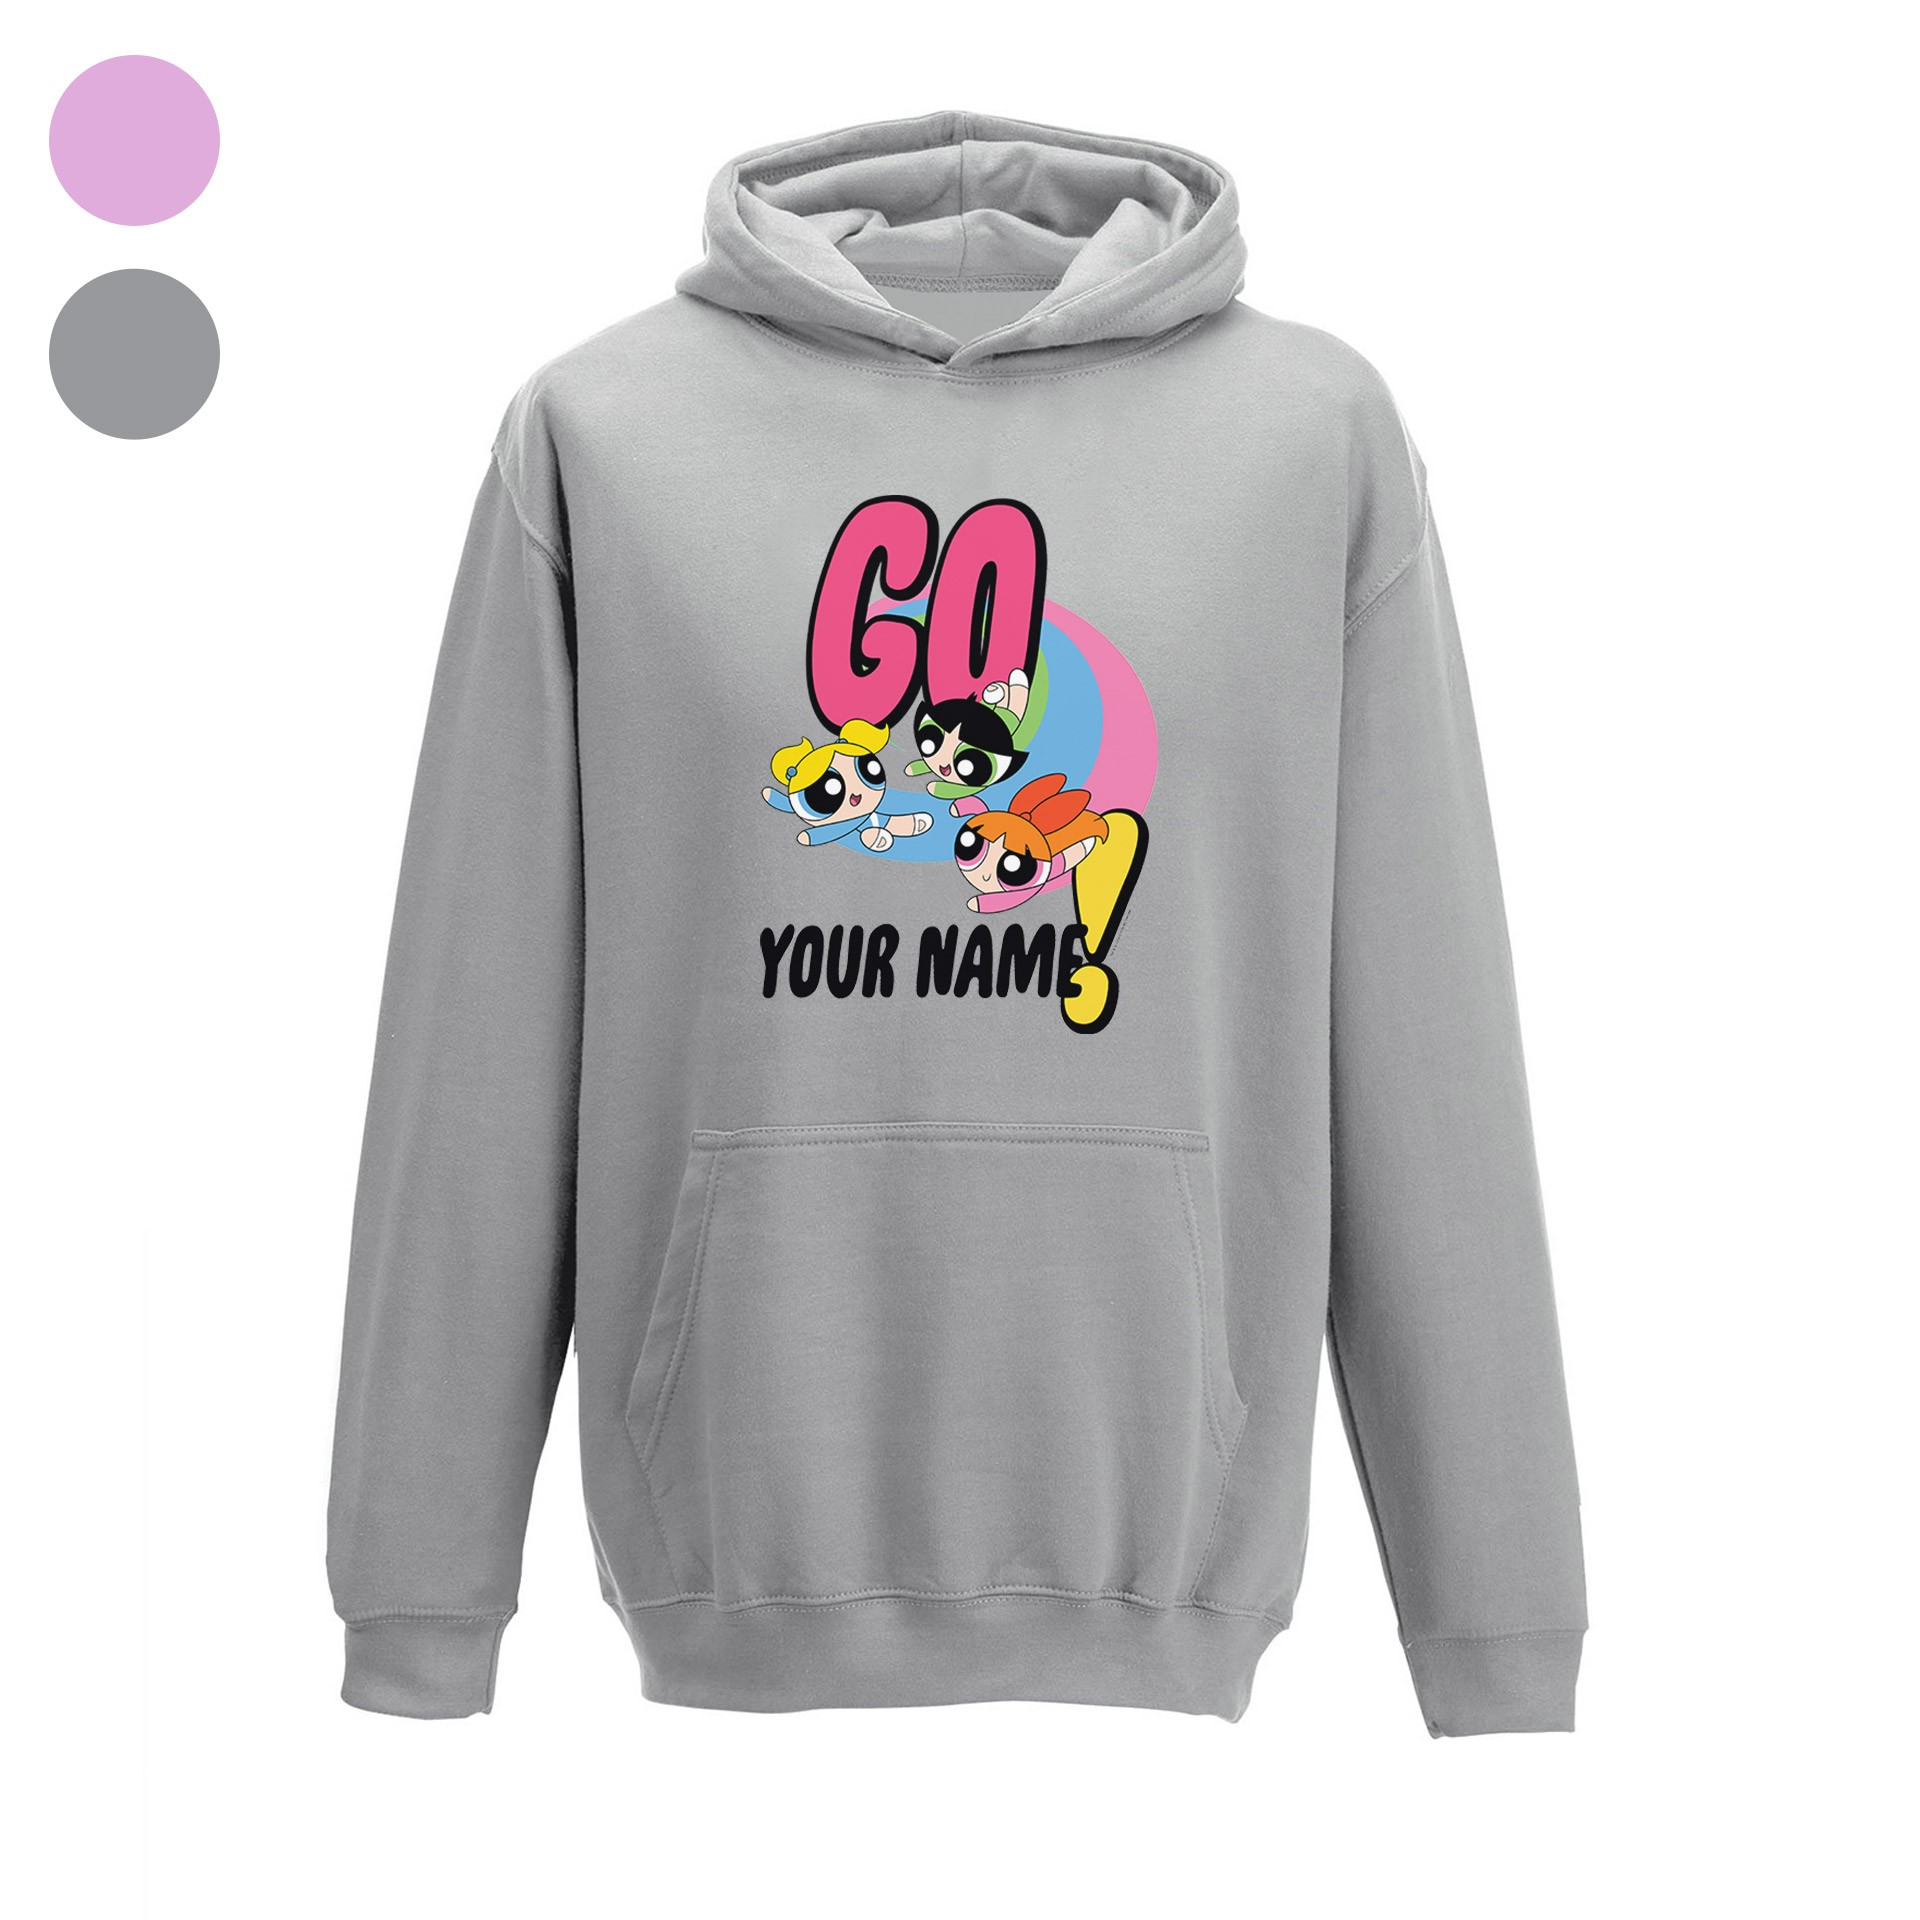 Powerpuff Girls Go Name Kids Hoodie